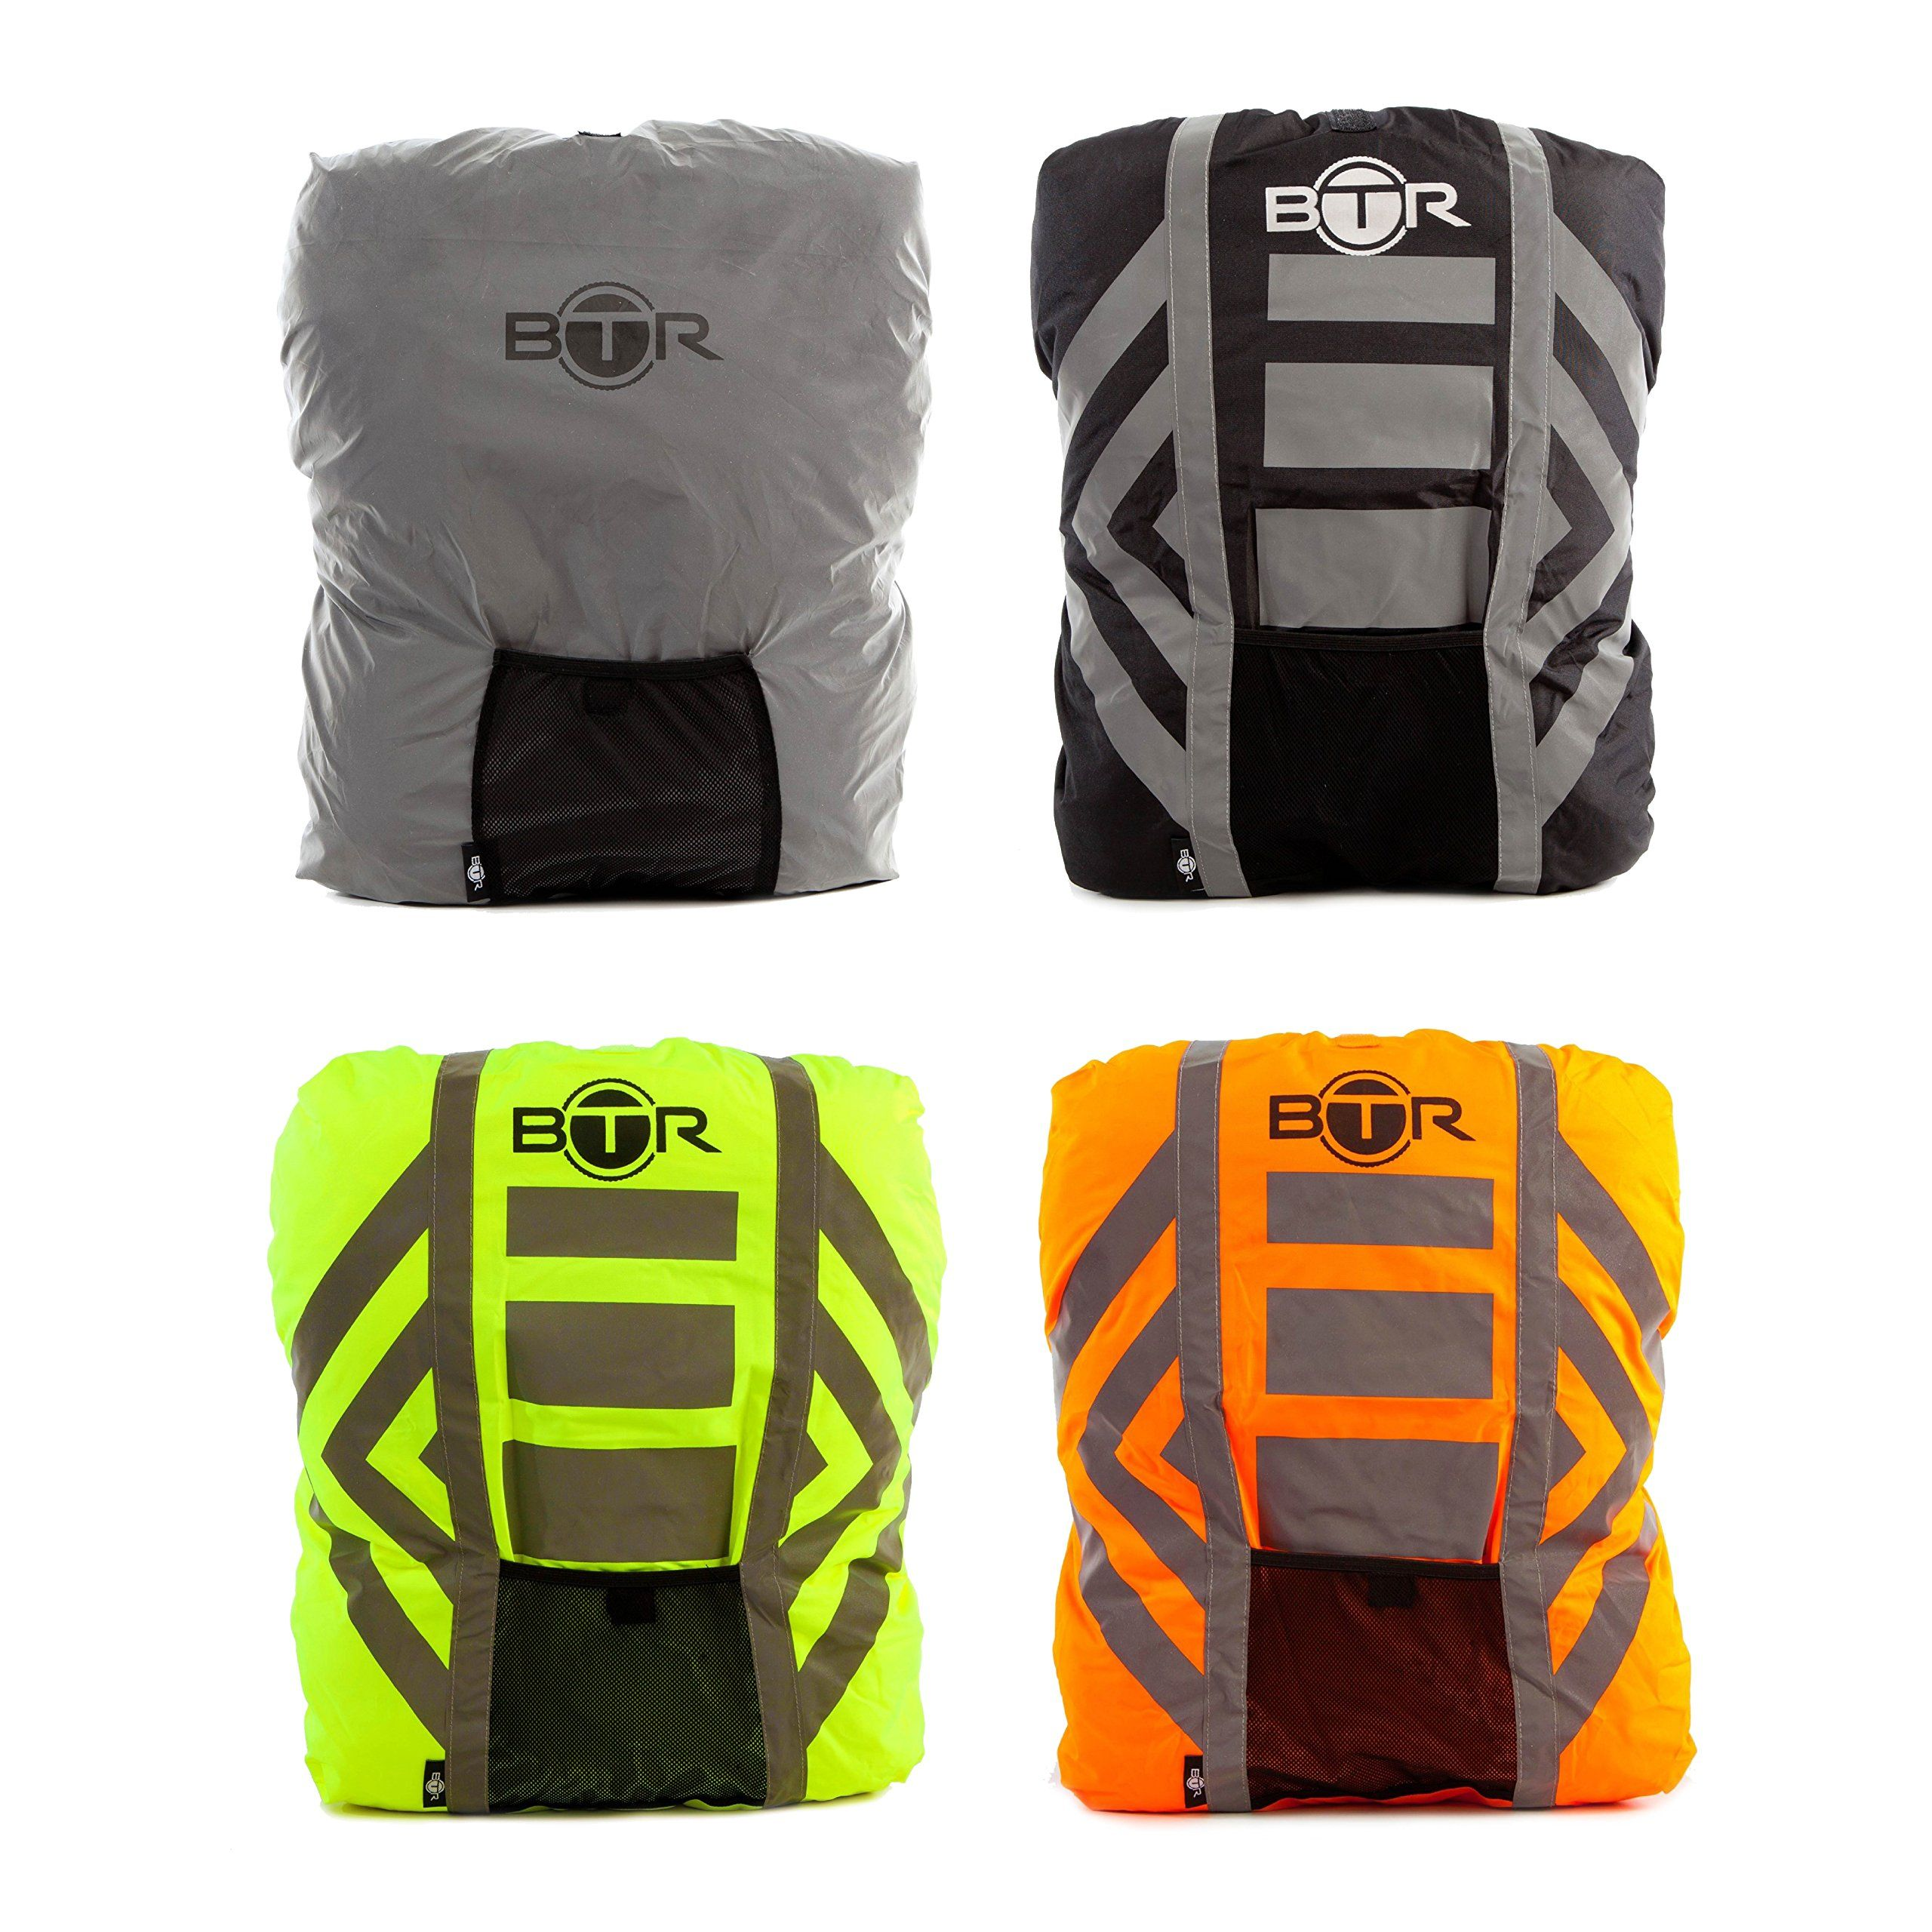 891f6b23d2b4 High Visibility Reflective M Orange Waterproof Backpack Cover. BEST Rucksack  Cover For Low Light